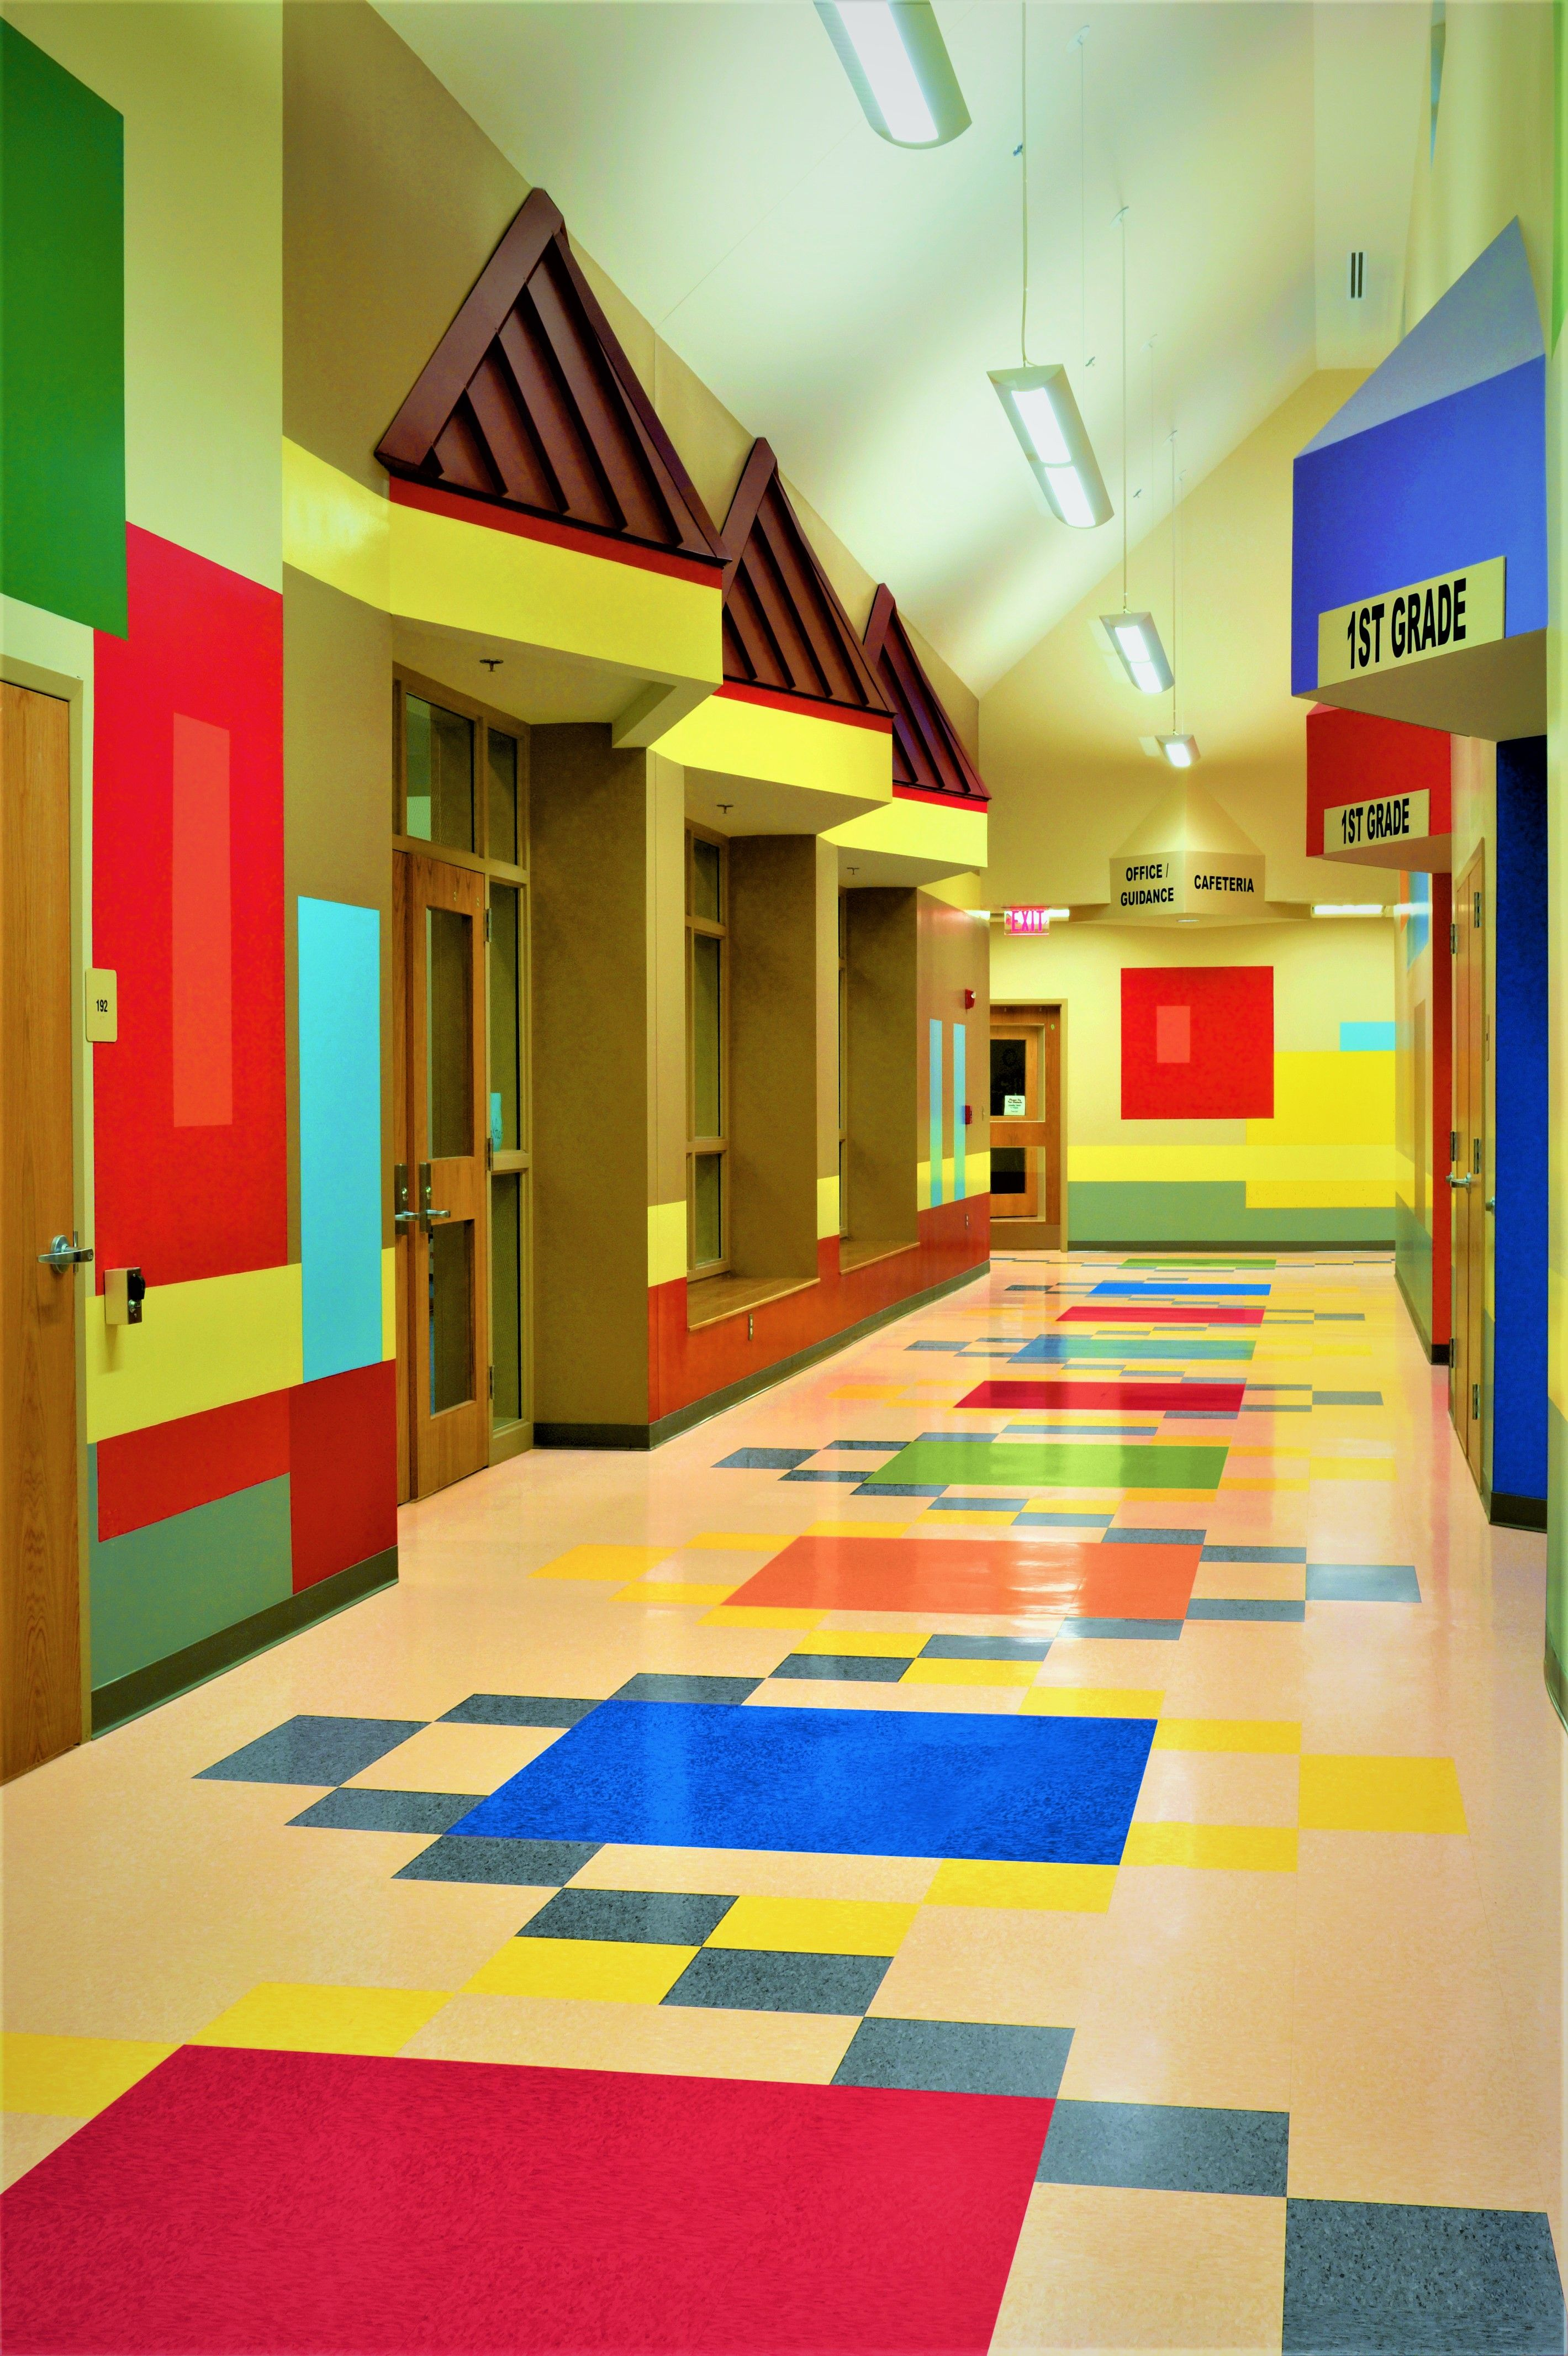 Elementary School In US, making the flooring fun for the